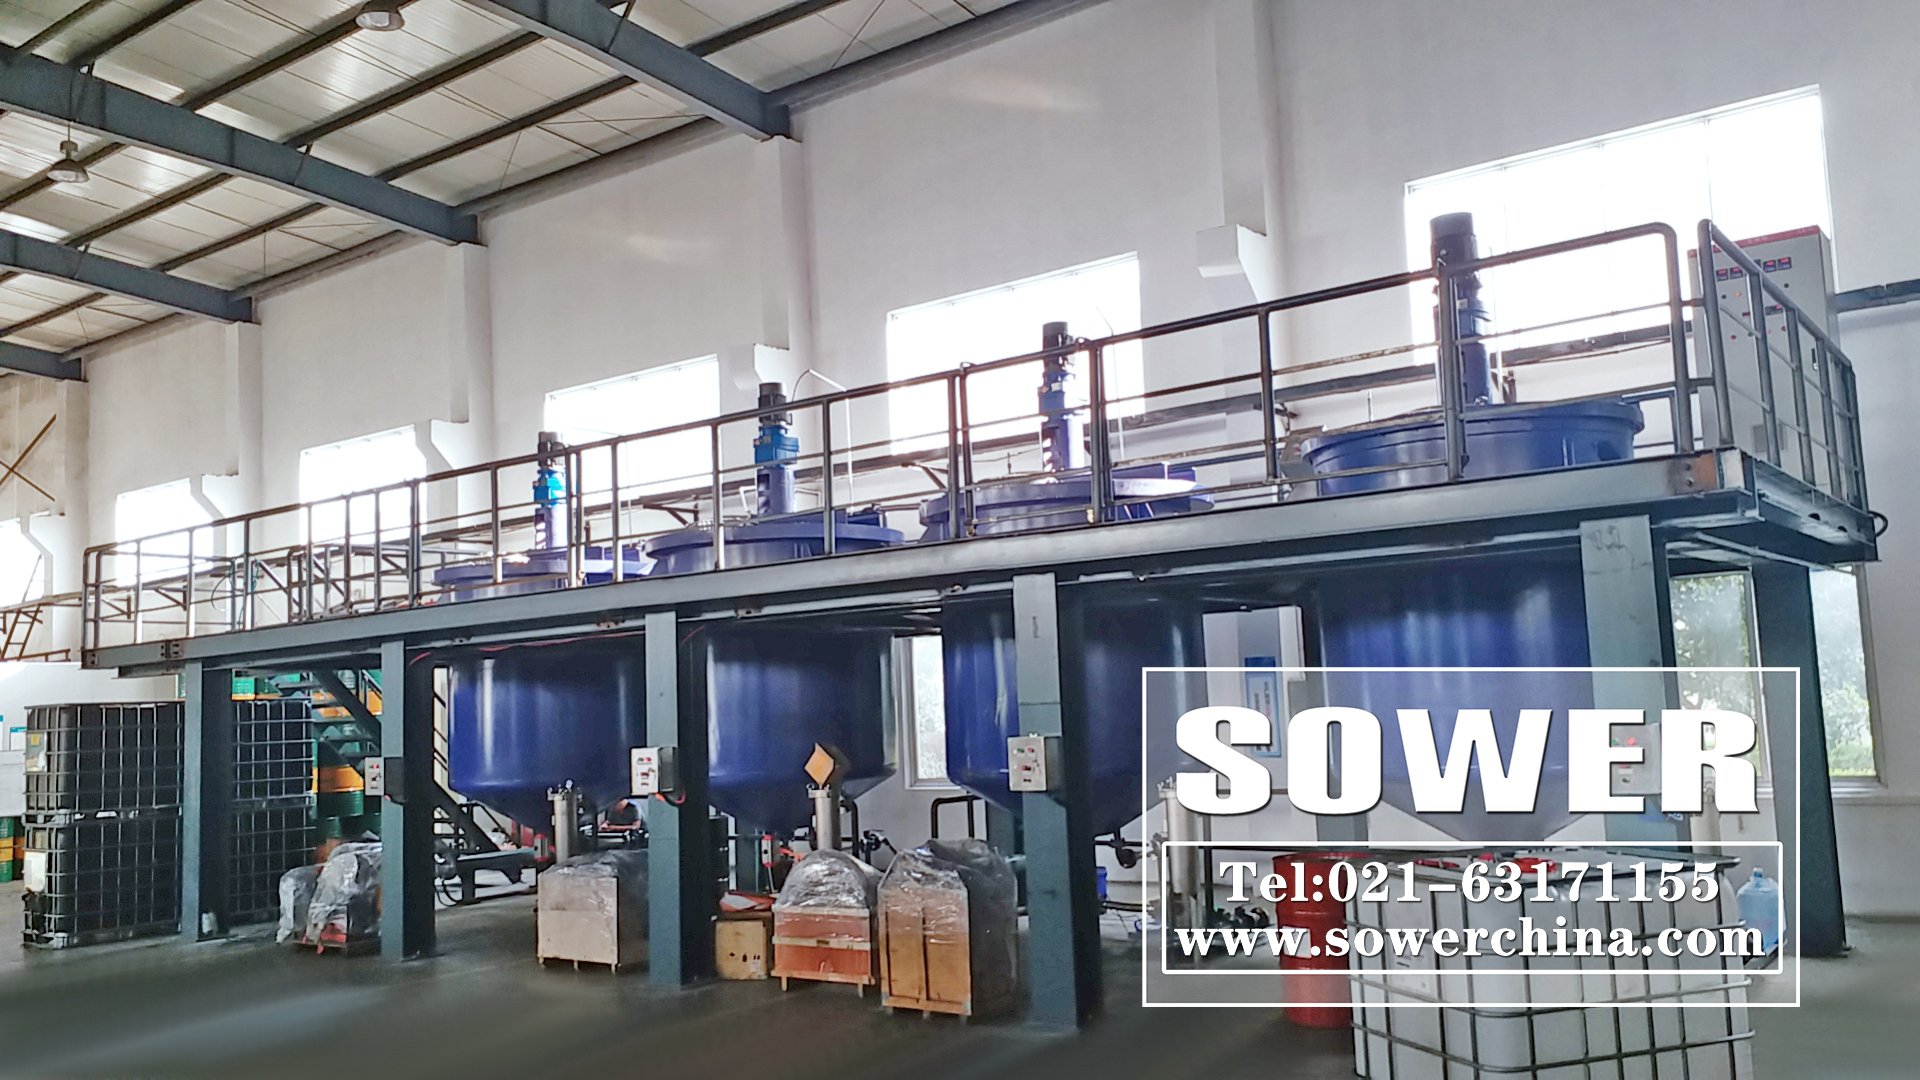 The lubricating oil project in charge of sower was put into operation smoothly